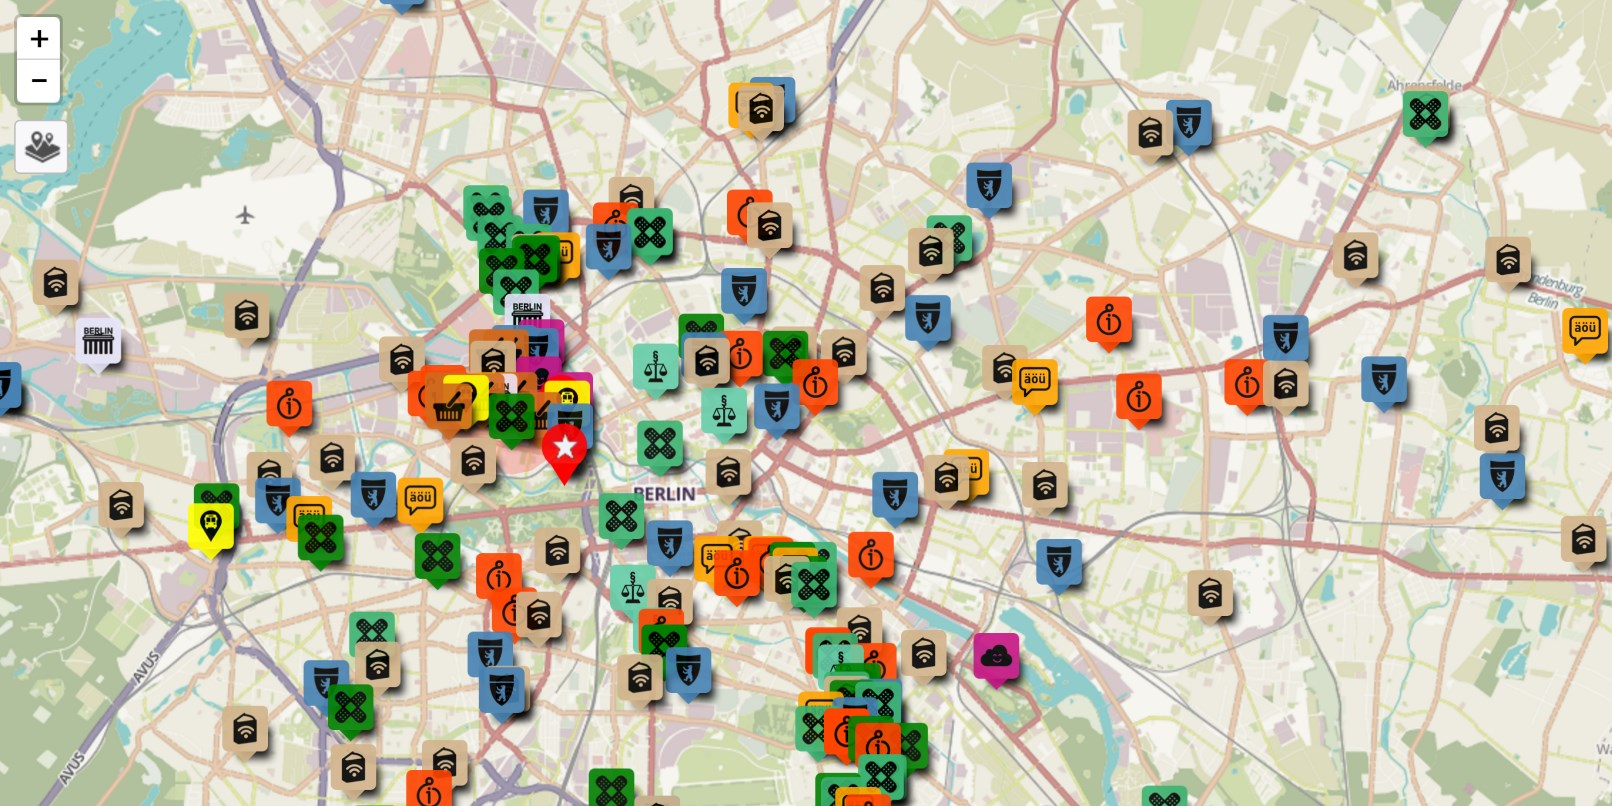 Berlin-based refugees create map of resources for newcomers